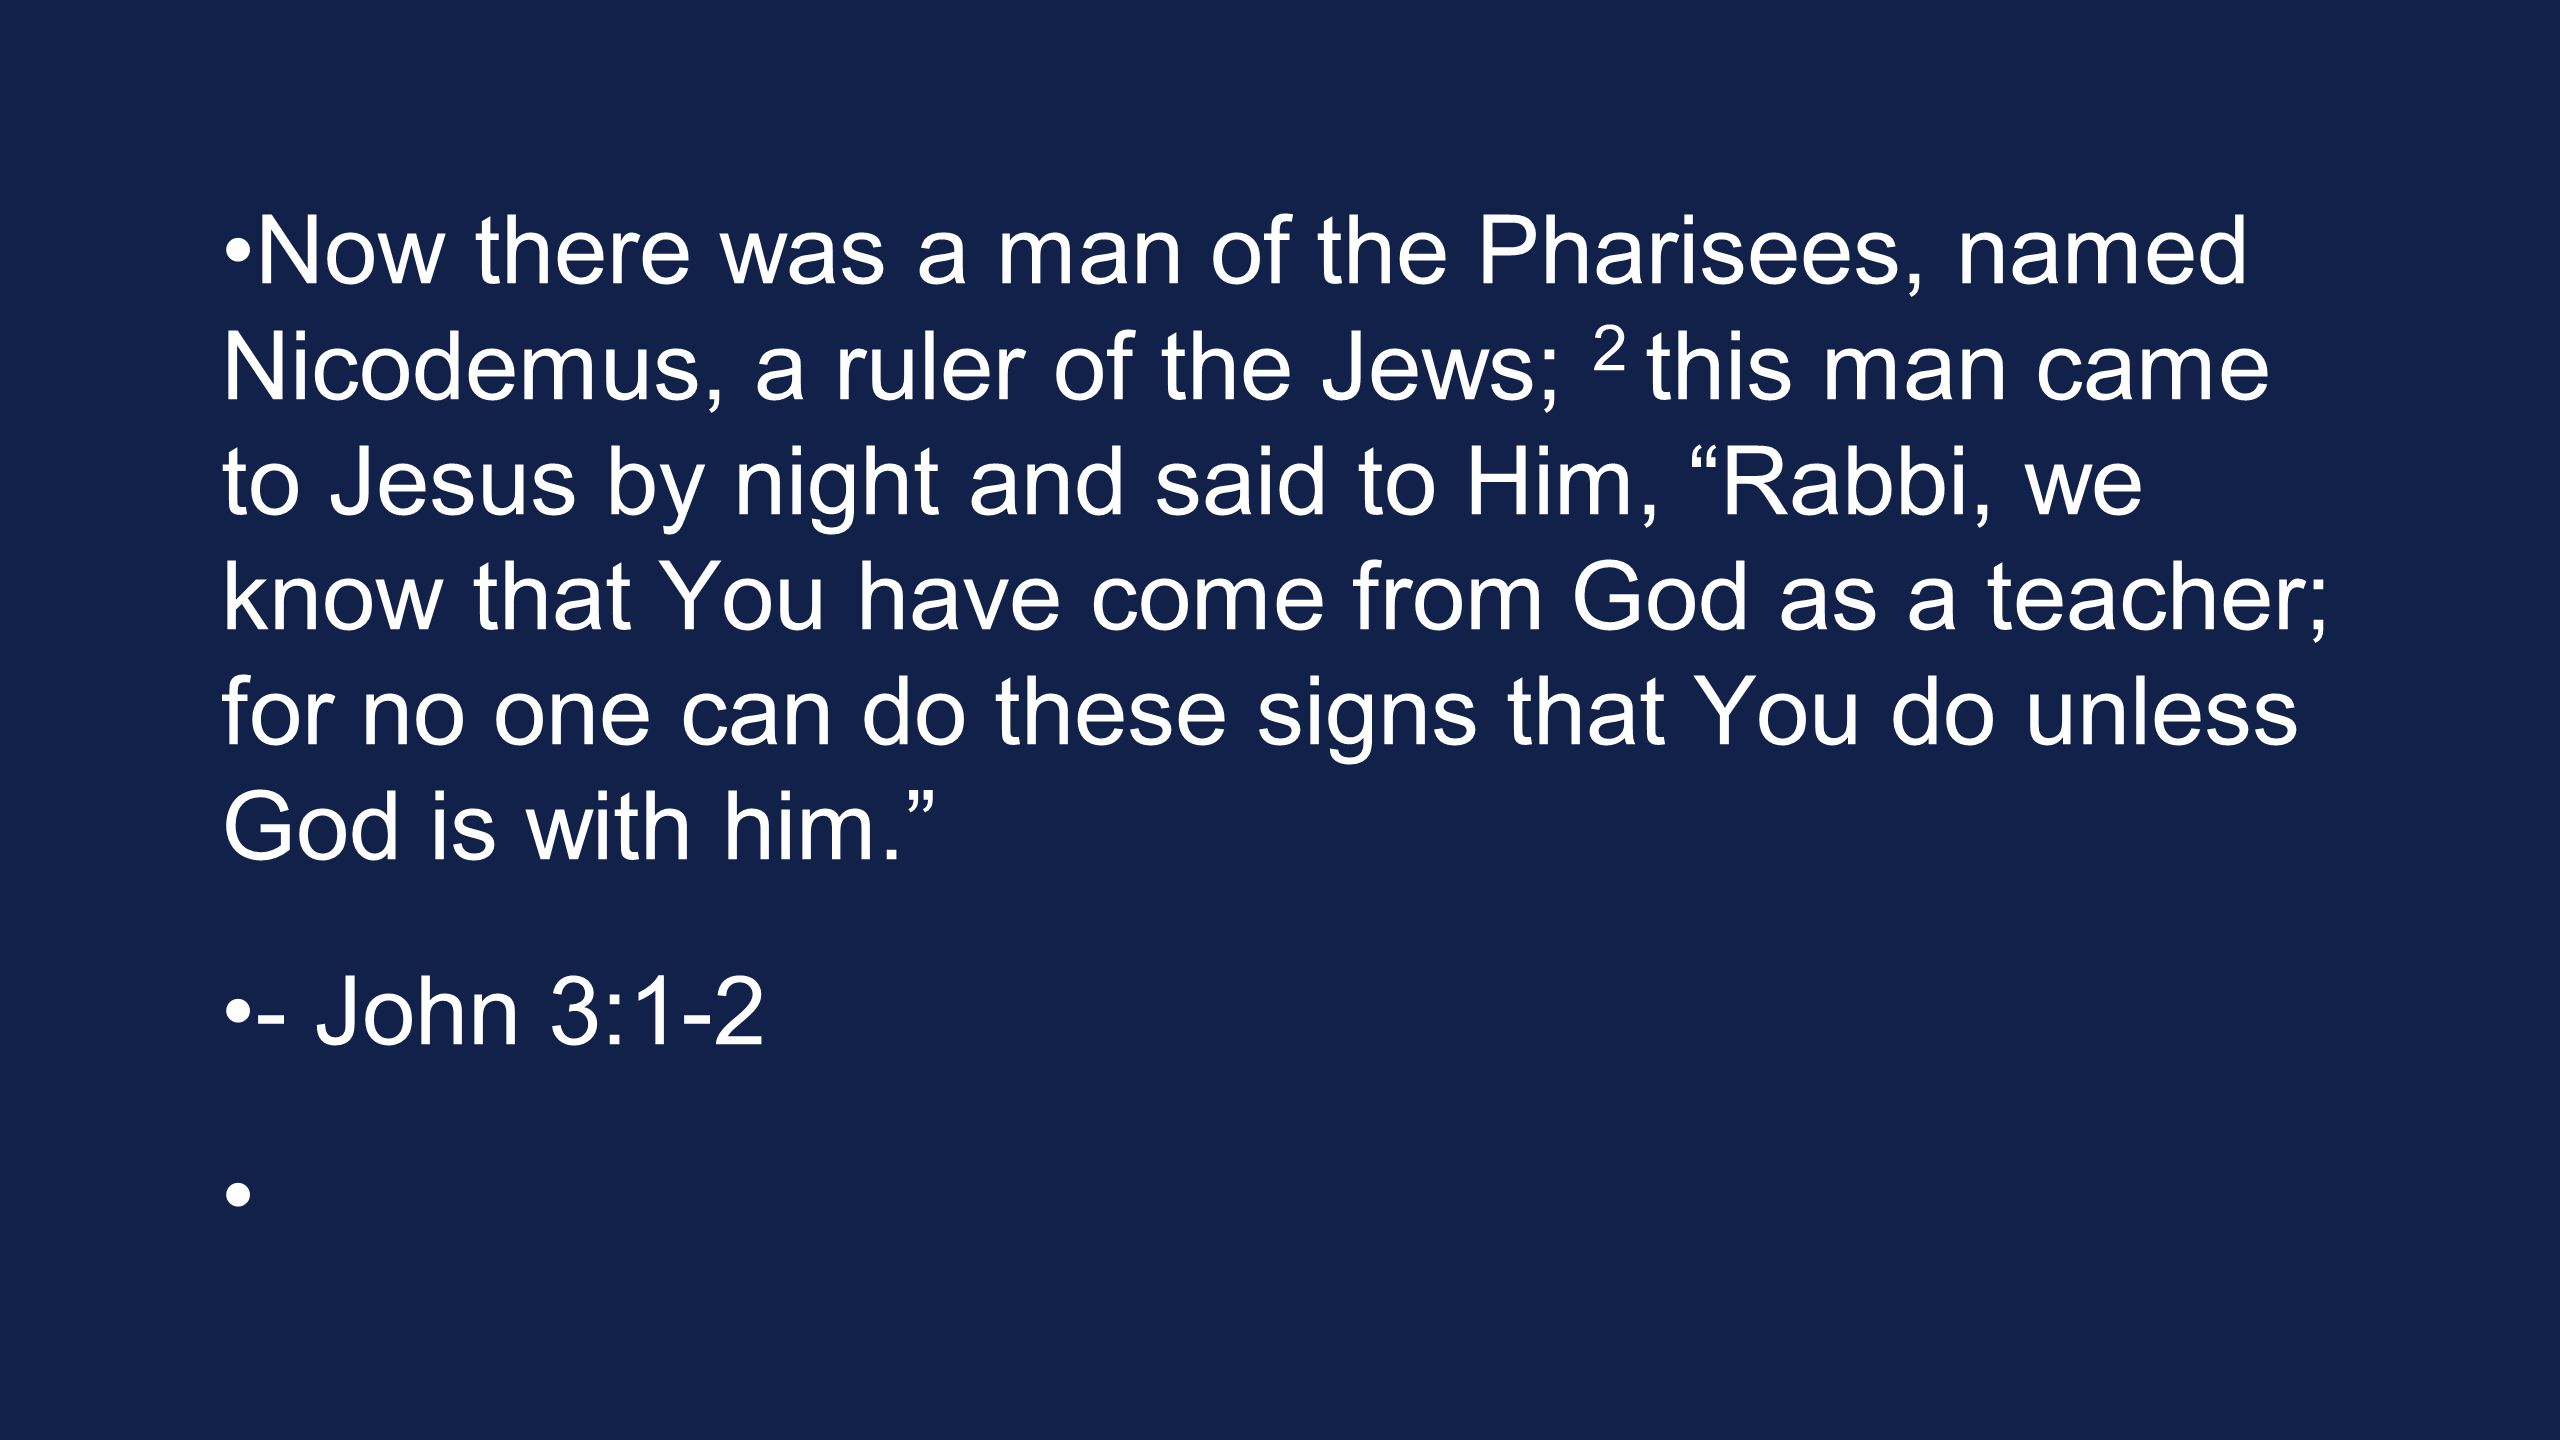 Now there was a man of the Pharisees, named Nicodemus, a ruler of the Jews; 2 this man came to Jesus by night and said to Him, Rabbi, we know that You have come from God as a teacher; for no one can do these signs that You do unless God is with him. - John 3:1-2